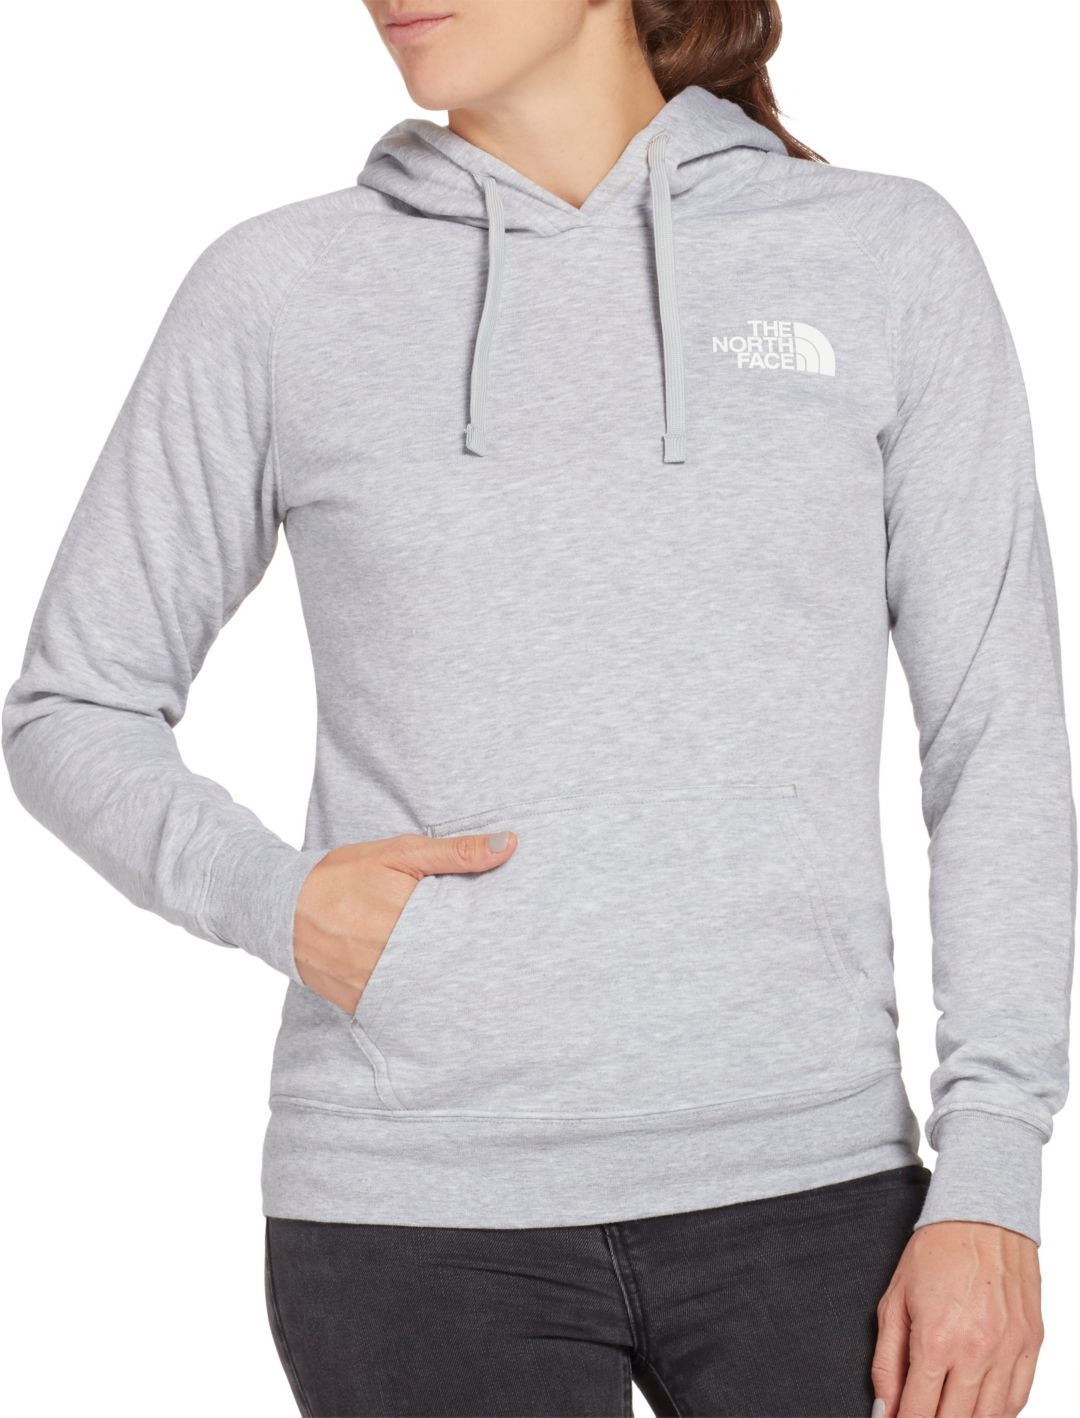 119111345 The North Face Women's Red Box Hoodie